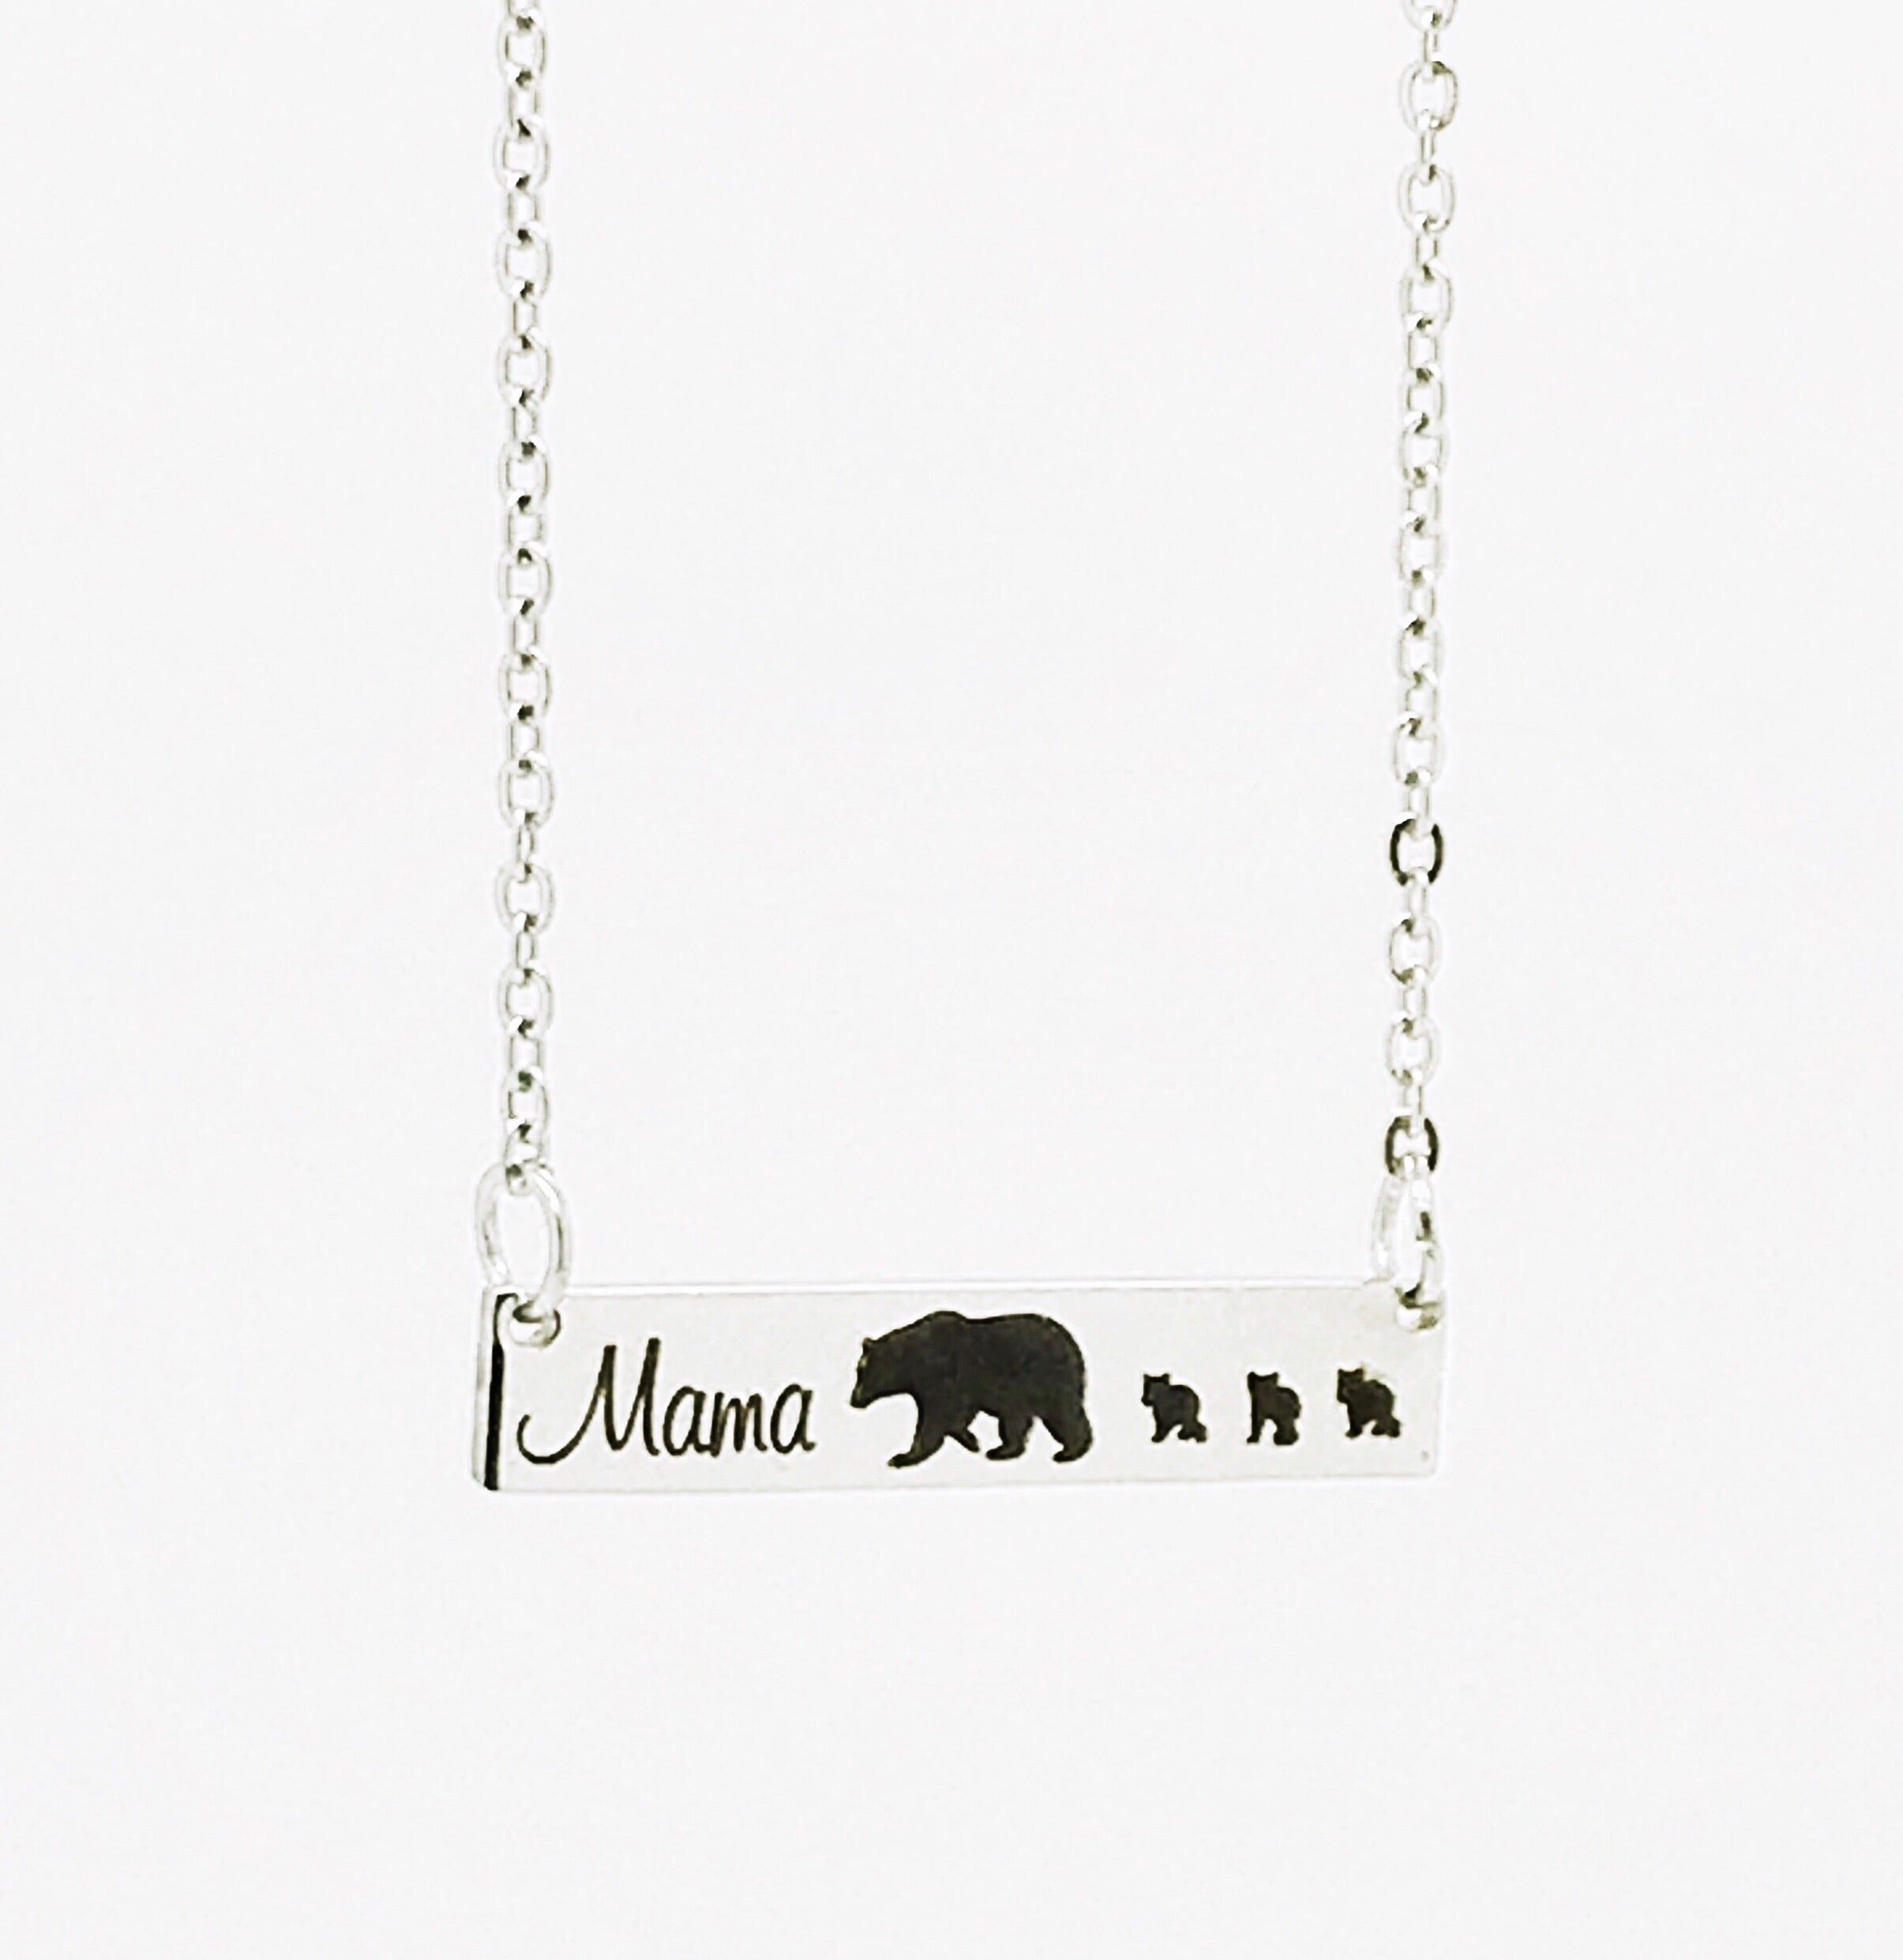 mother necklaces gifts meaningful il photo fullxfull listing gallery necklace jewelry daughter christmas